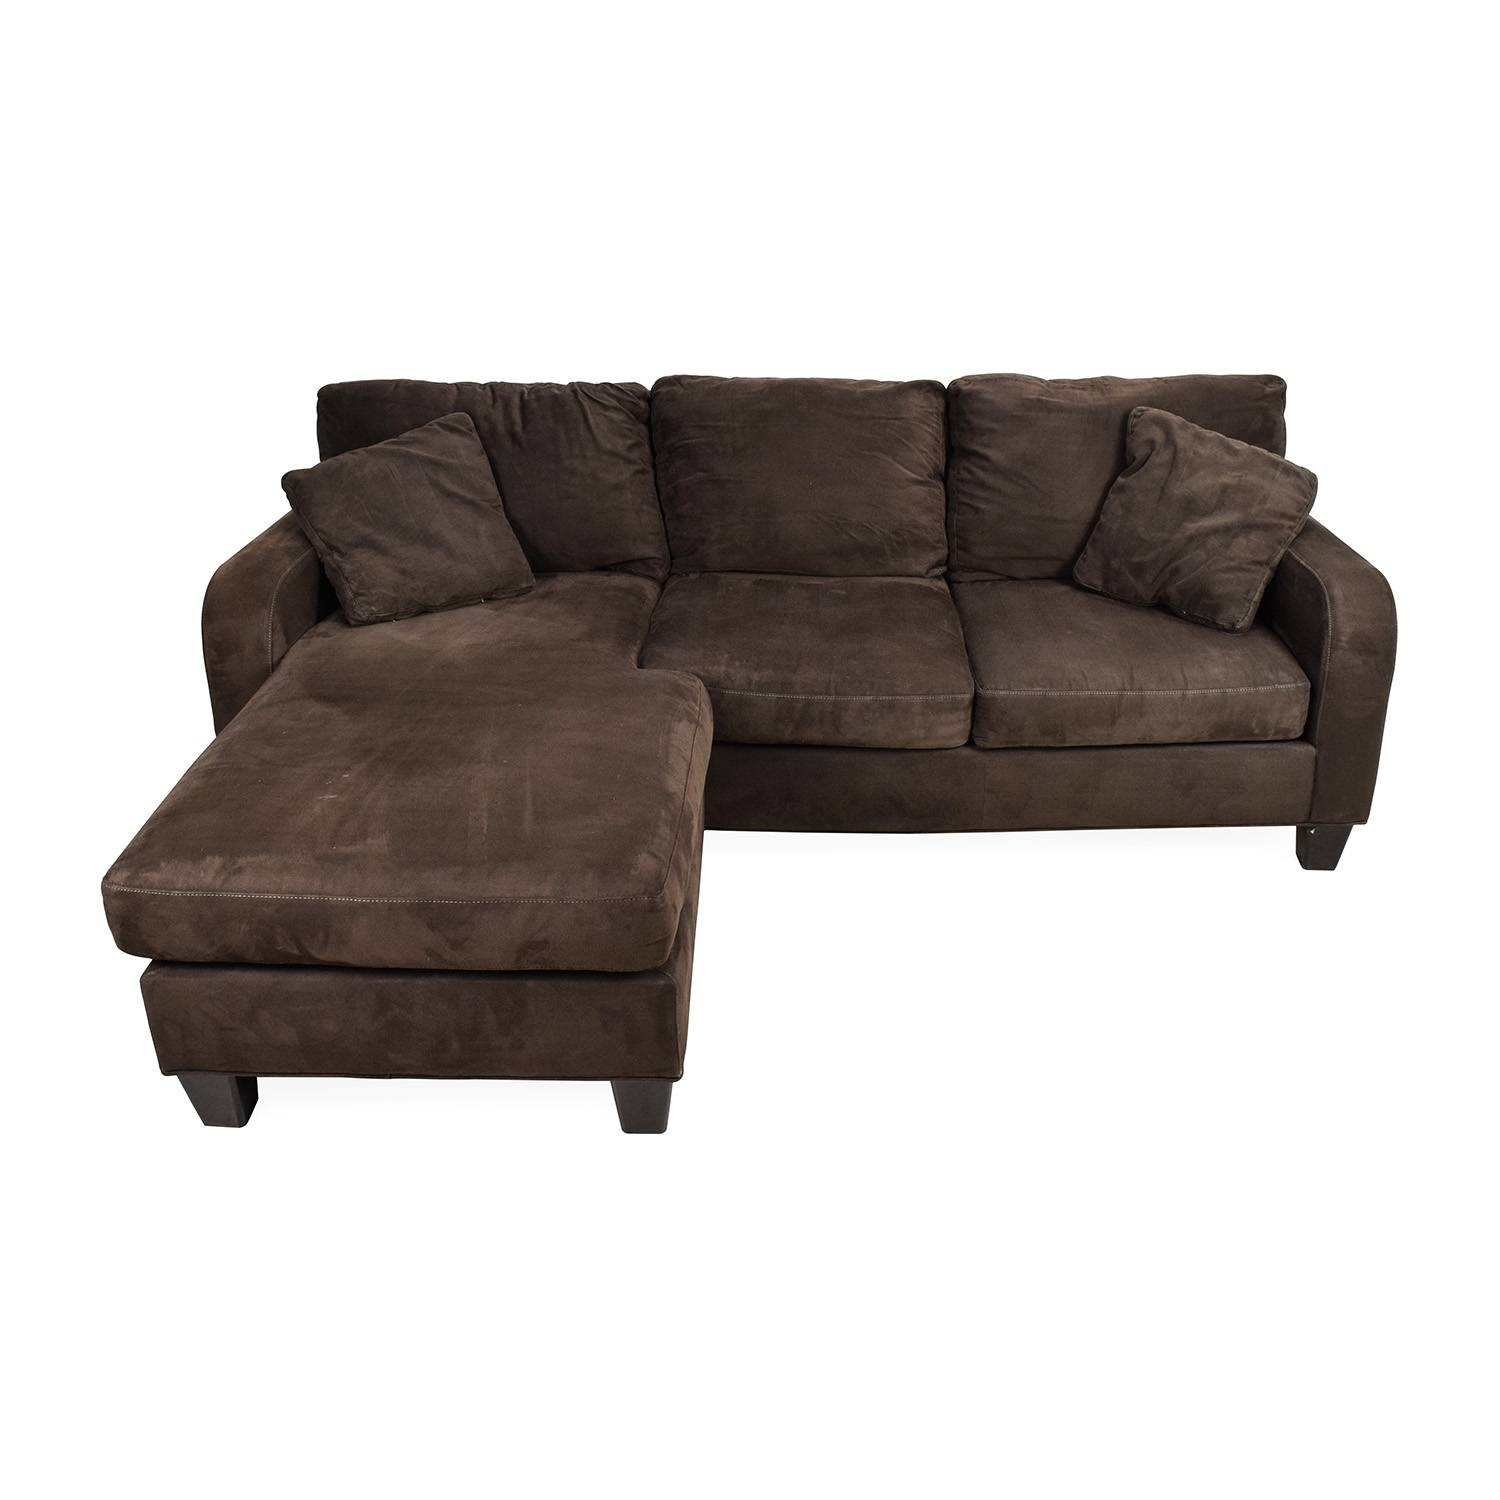 Furniture: Cindy Crawford Sofa Sleeper | Cindy Crawford Sectional throughout Cindy Crawford Furniture Sectional Sofas (Image 10 of 15)